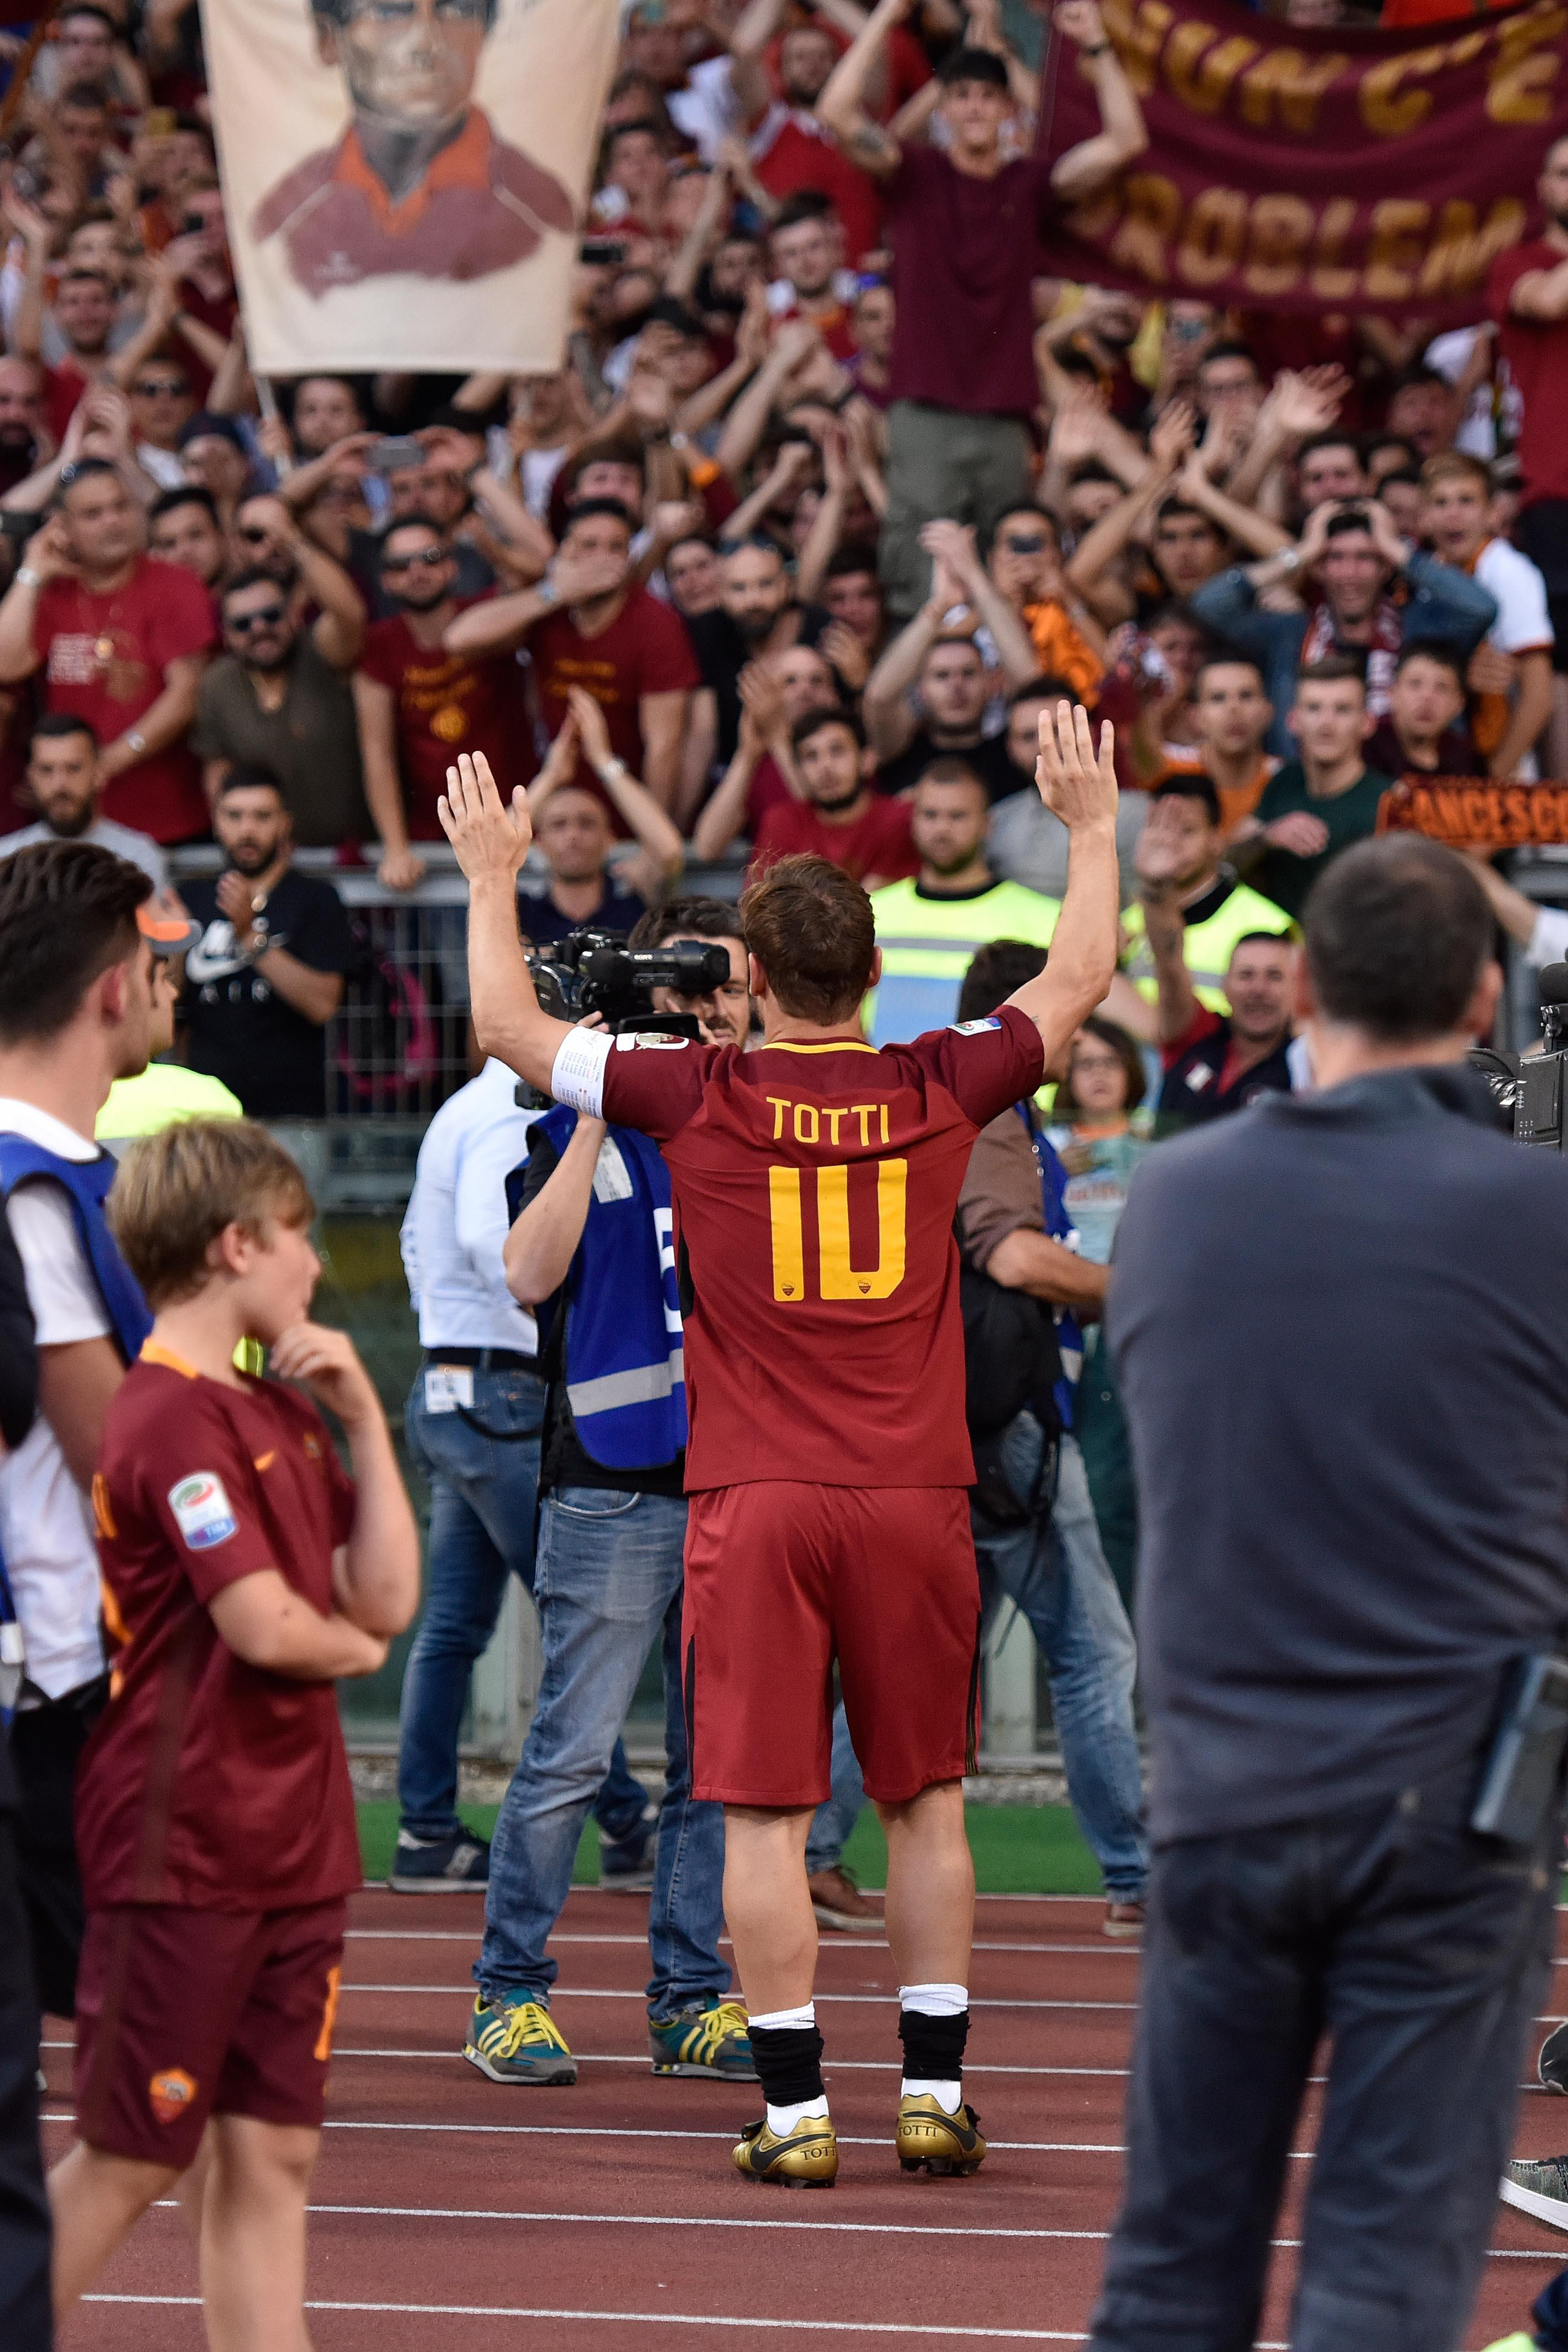 Francesco Totti retired at the end of last season to incredible fanfare at the Stadio Olimpico